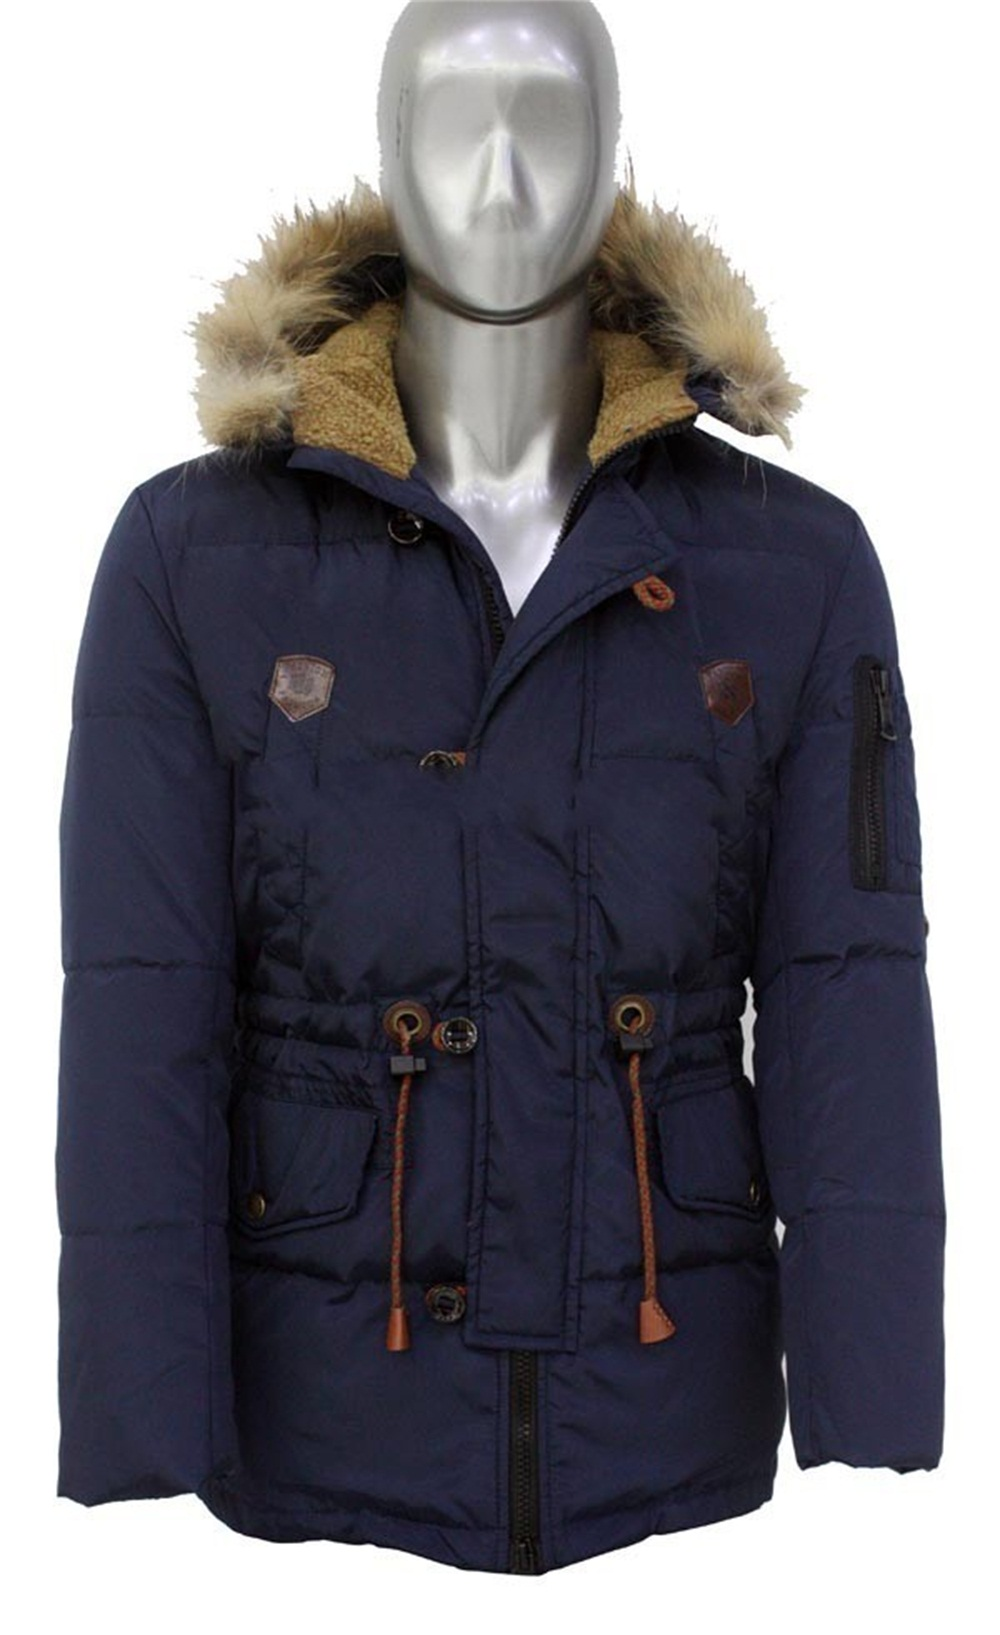 Men jacket,fashion jacket,latest winter jacket for men 8196